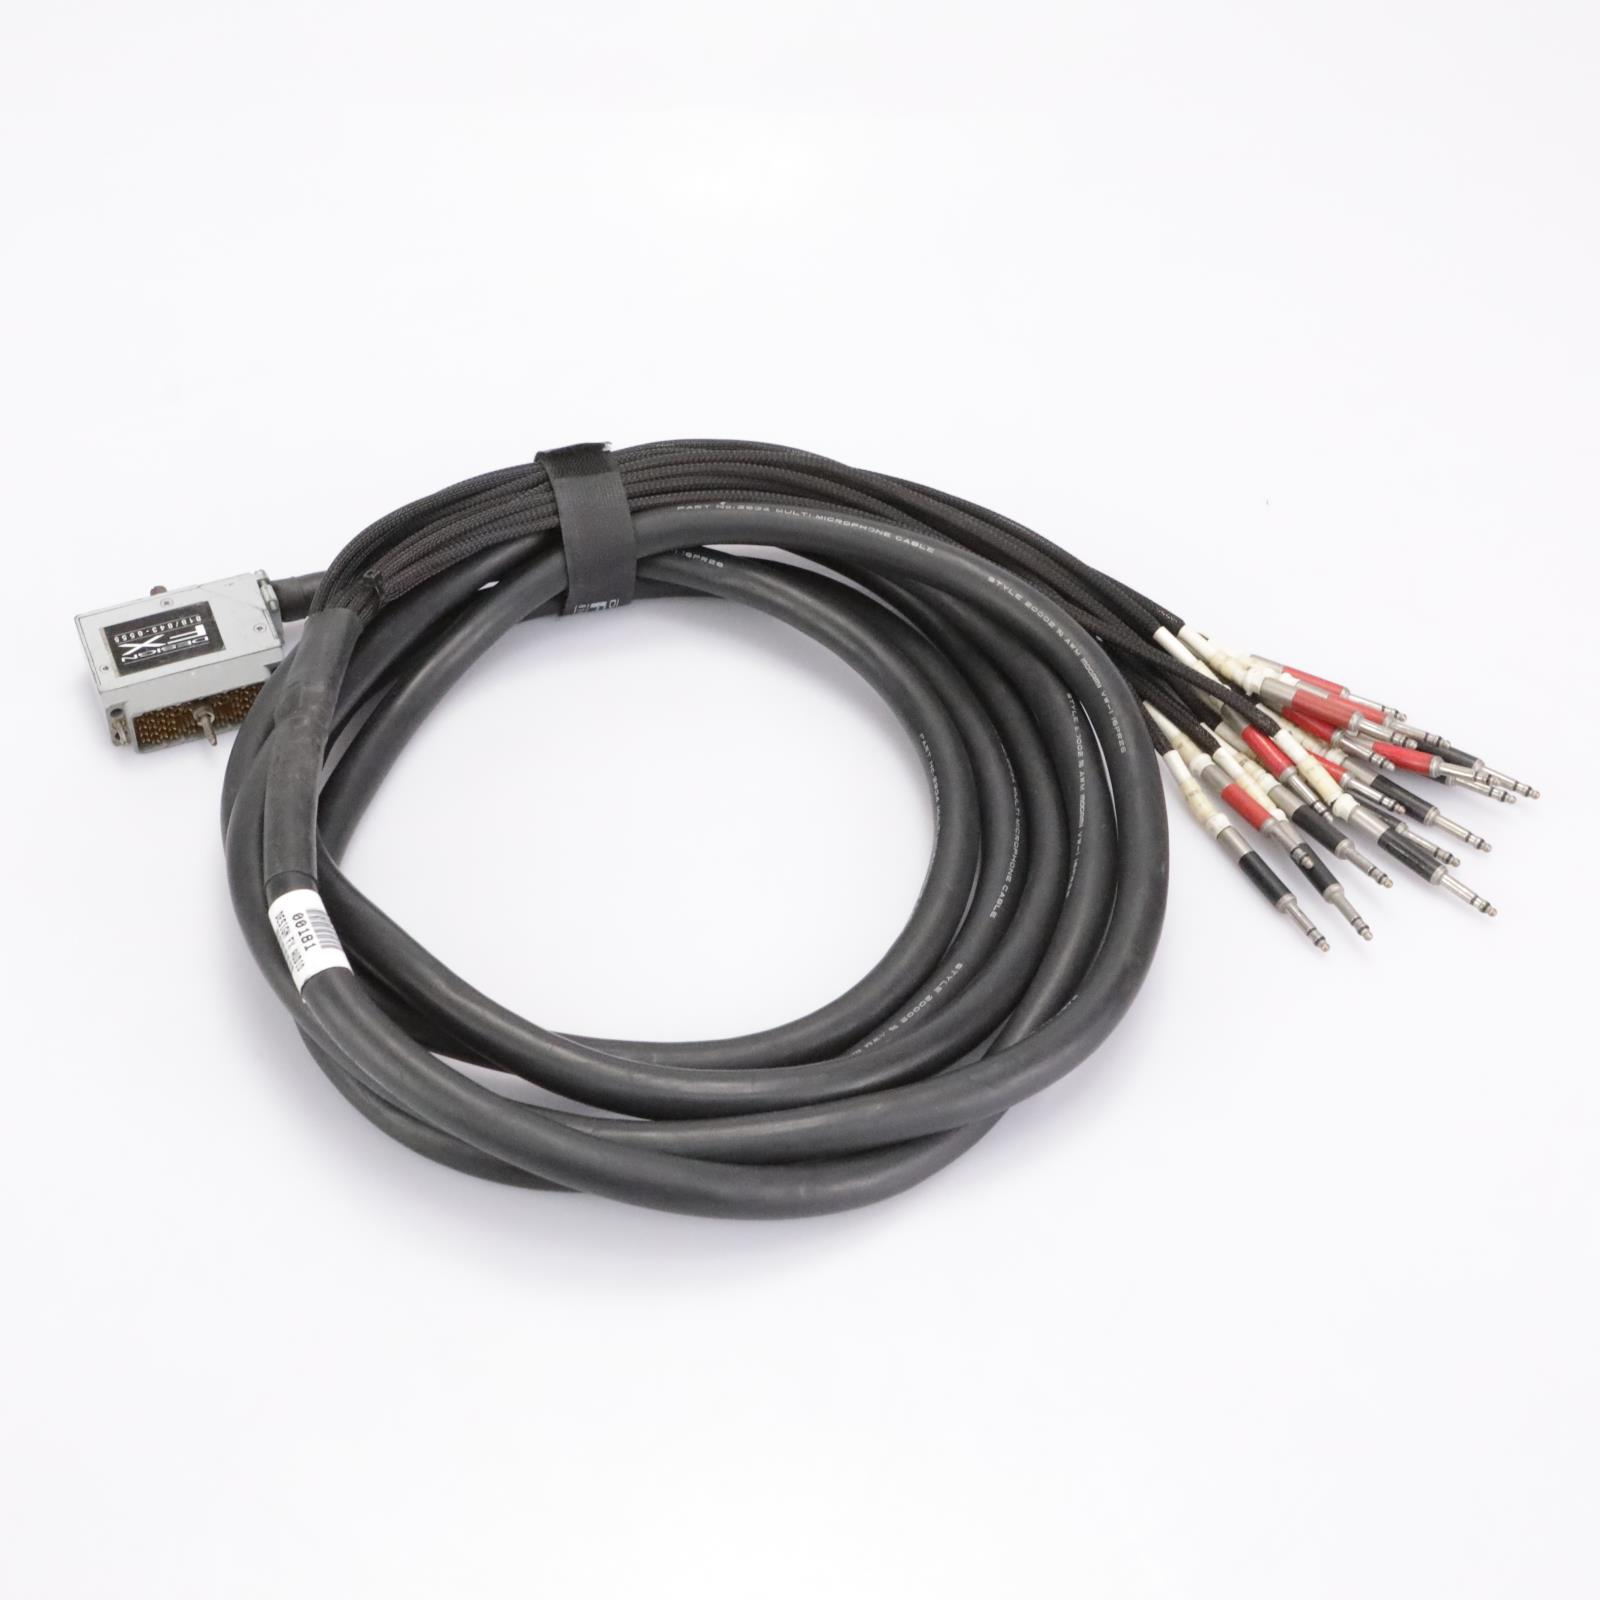 Mogami 15' W2934 16-Ch 56-Pin Edac - TT Patch Snake Cable #42939